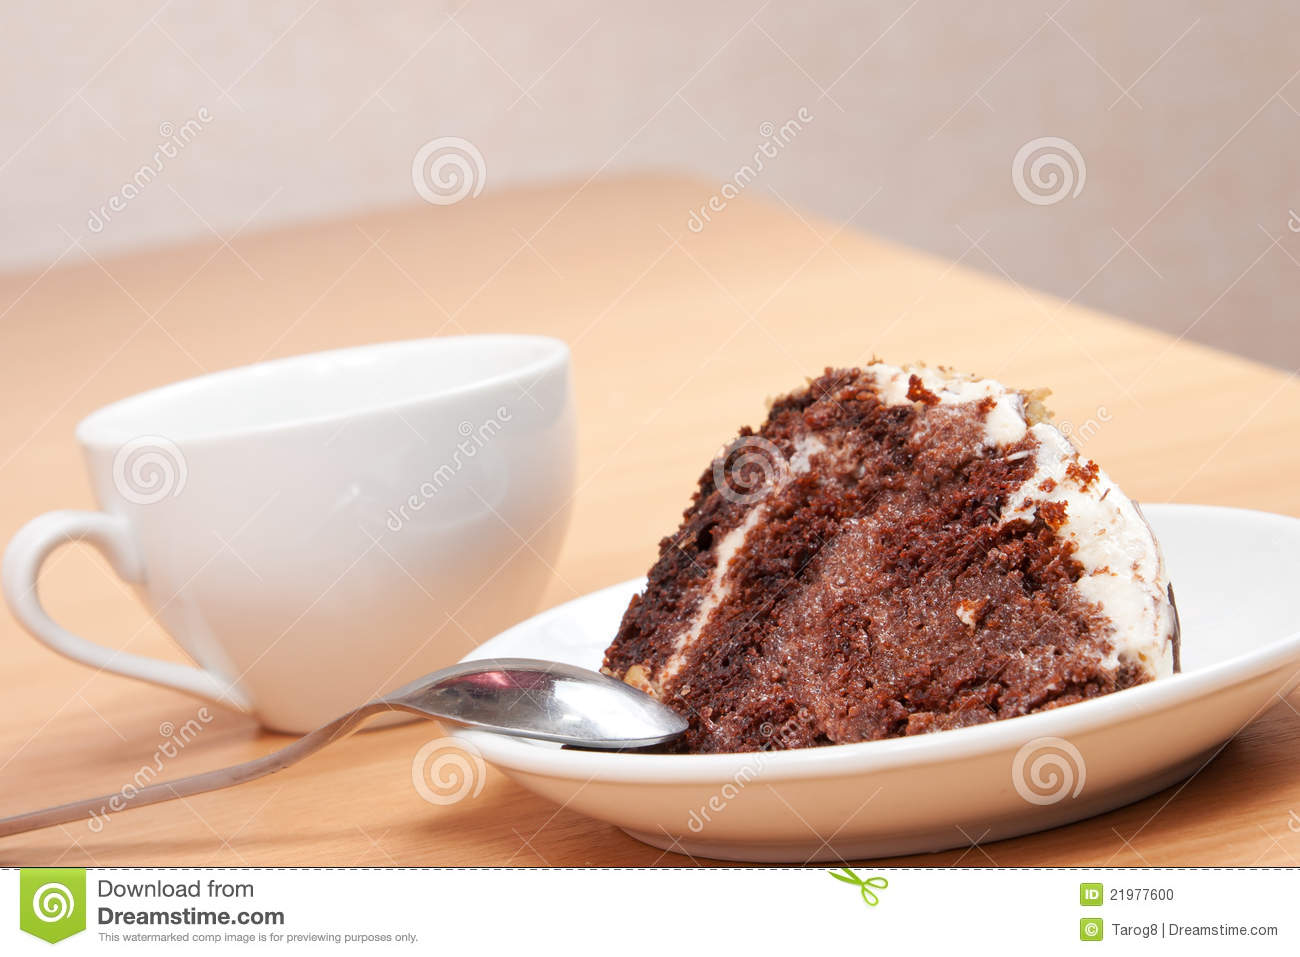 Tasty Chocolate Cake Images : Tasty Chocolate Cake On A Plate With A Cup Stock Photo ...